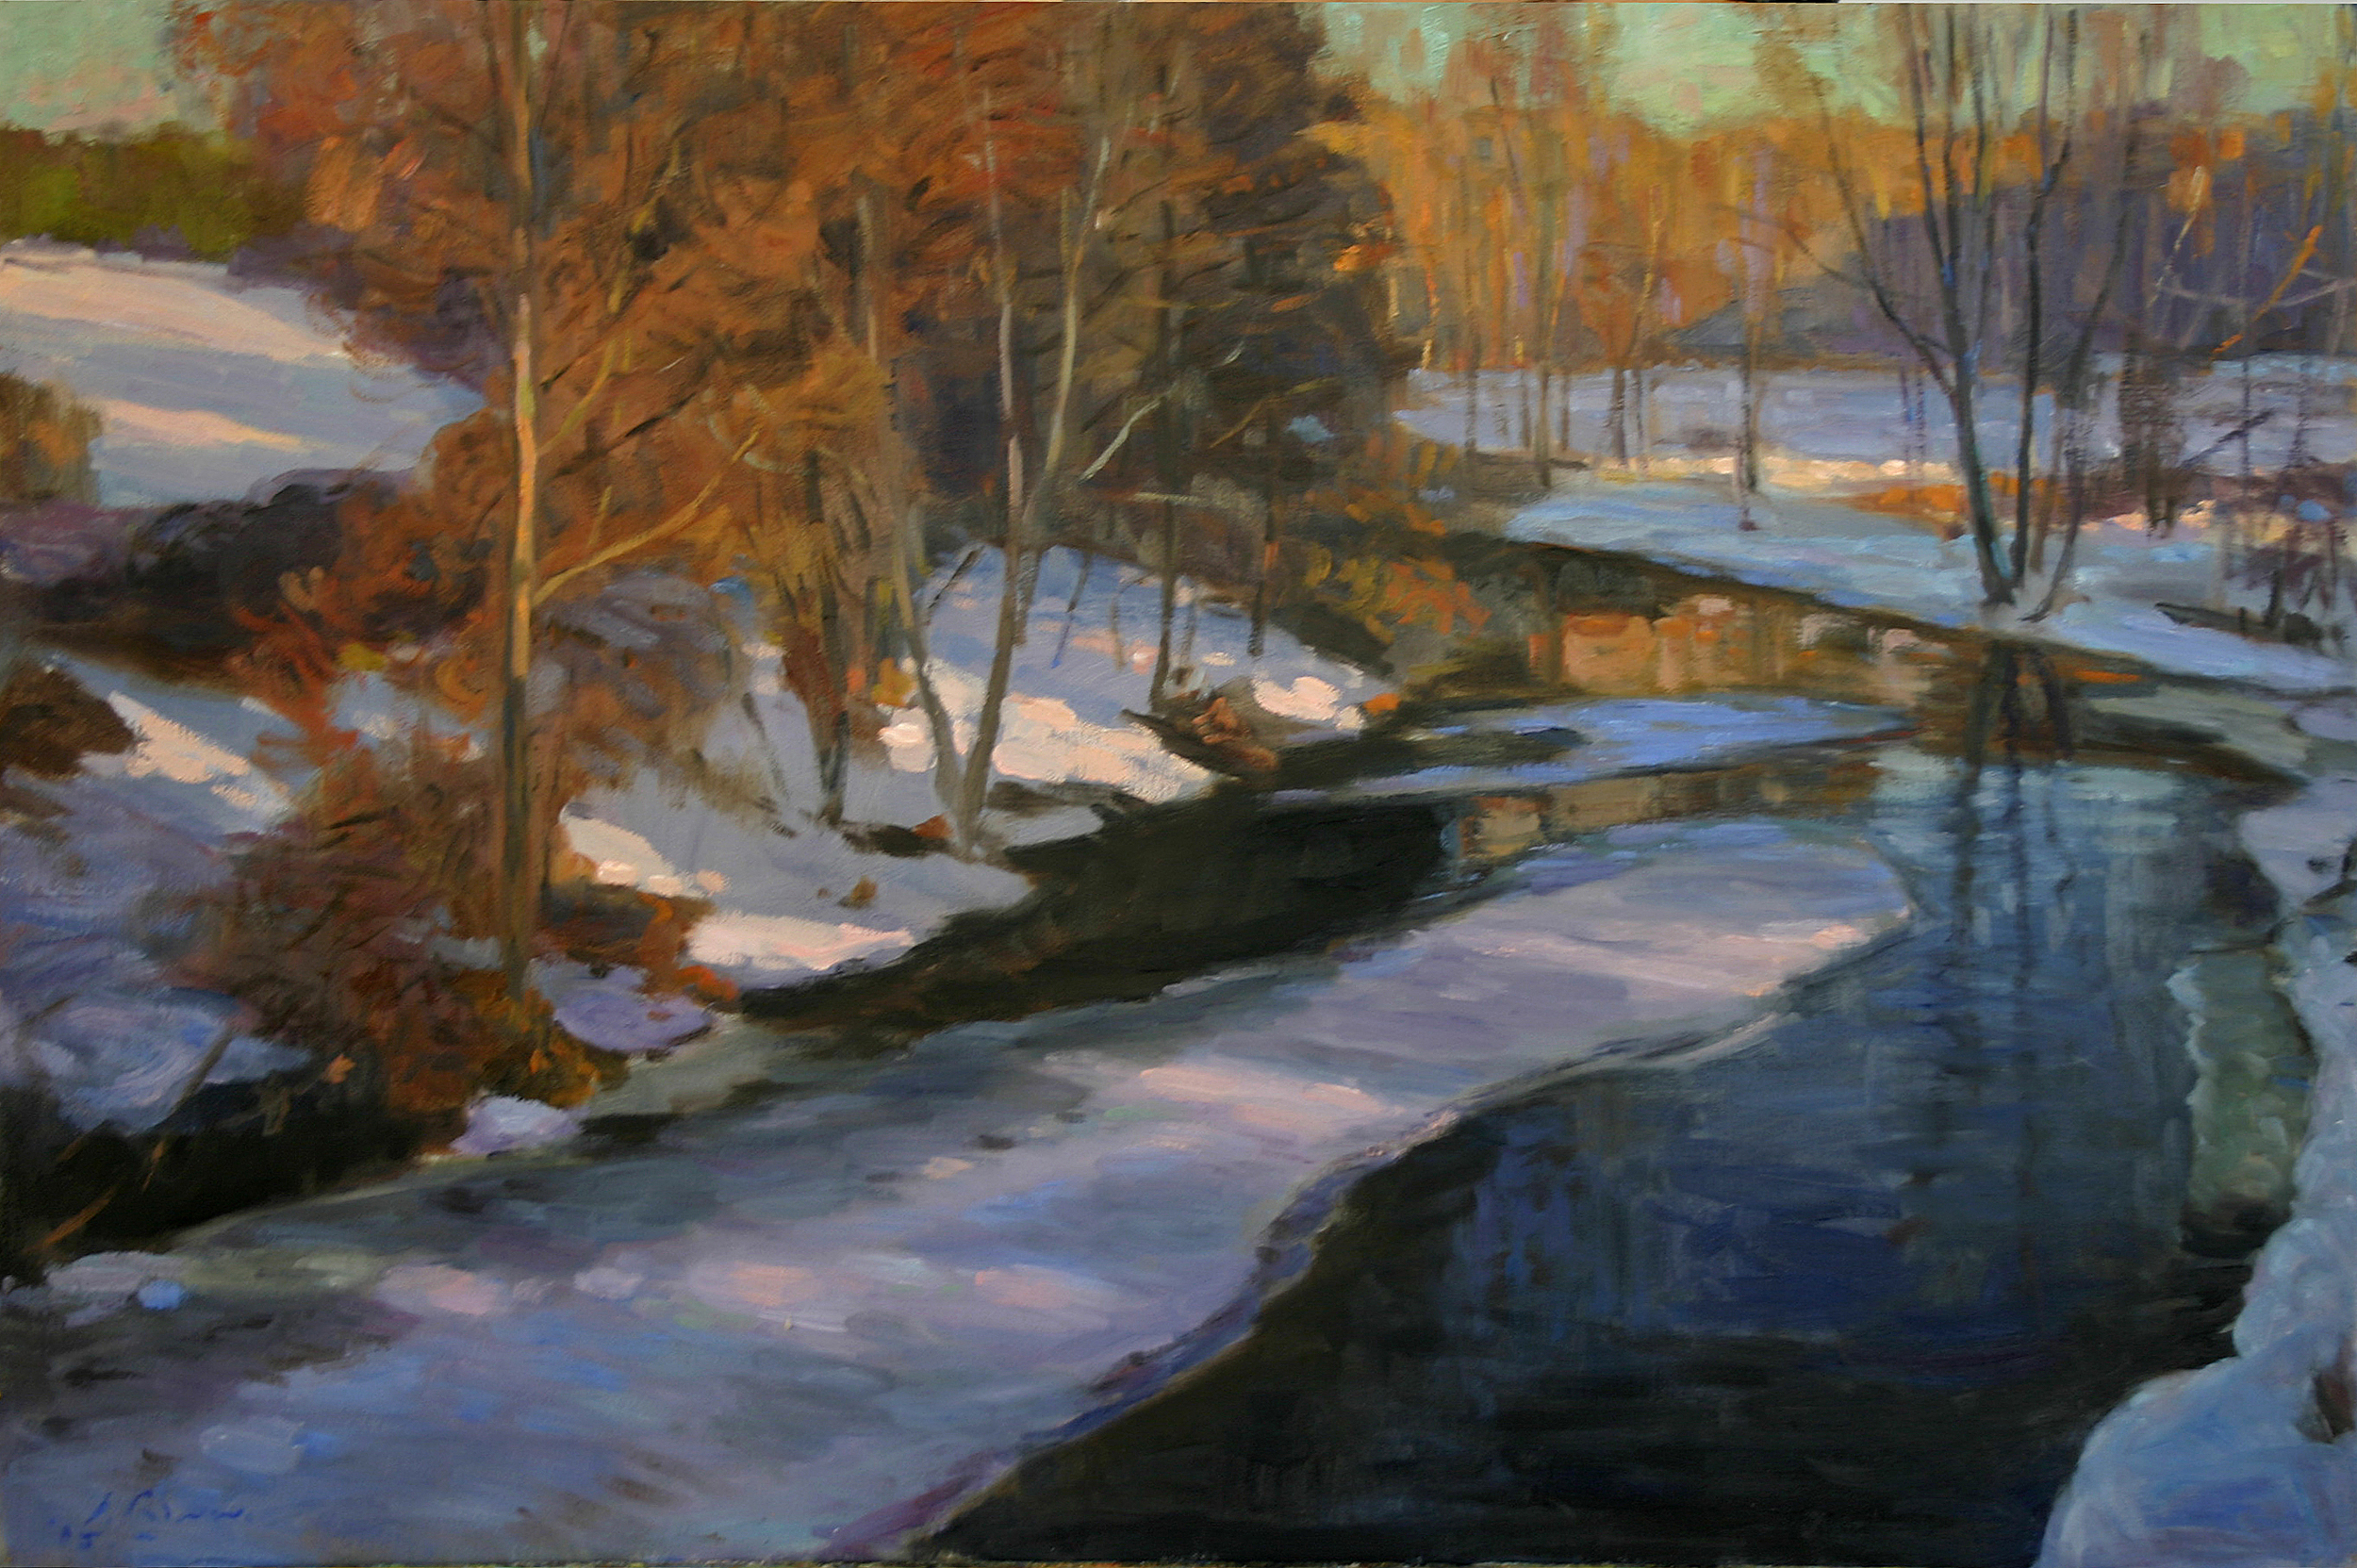 Winter Stream, Oil on canvas, 24x36 inches. [sold]